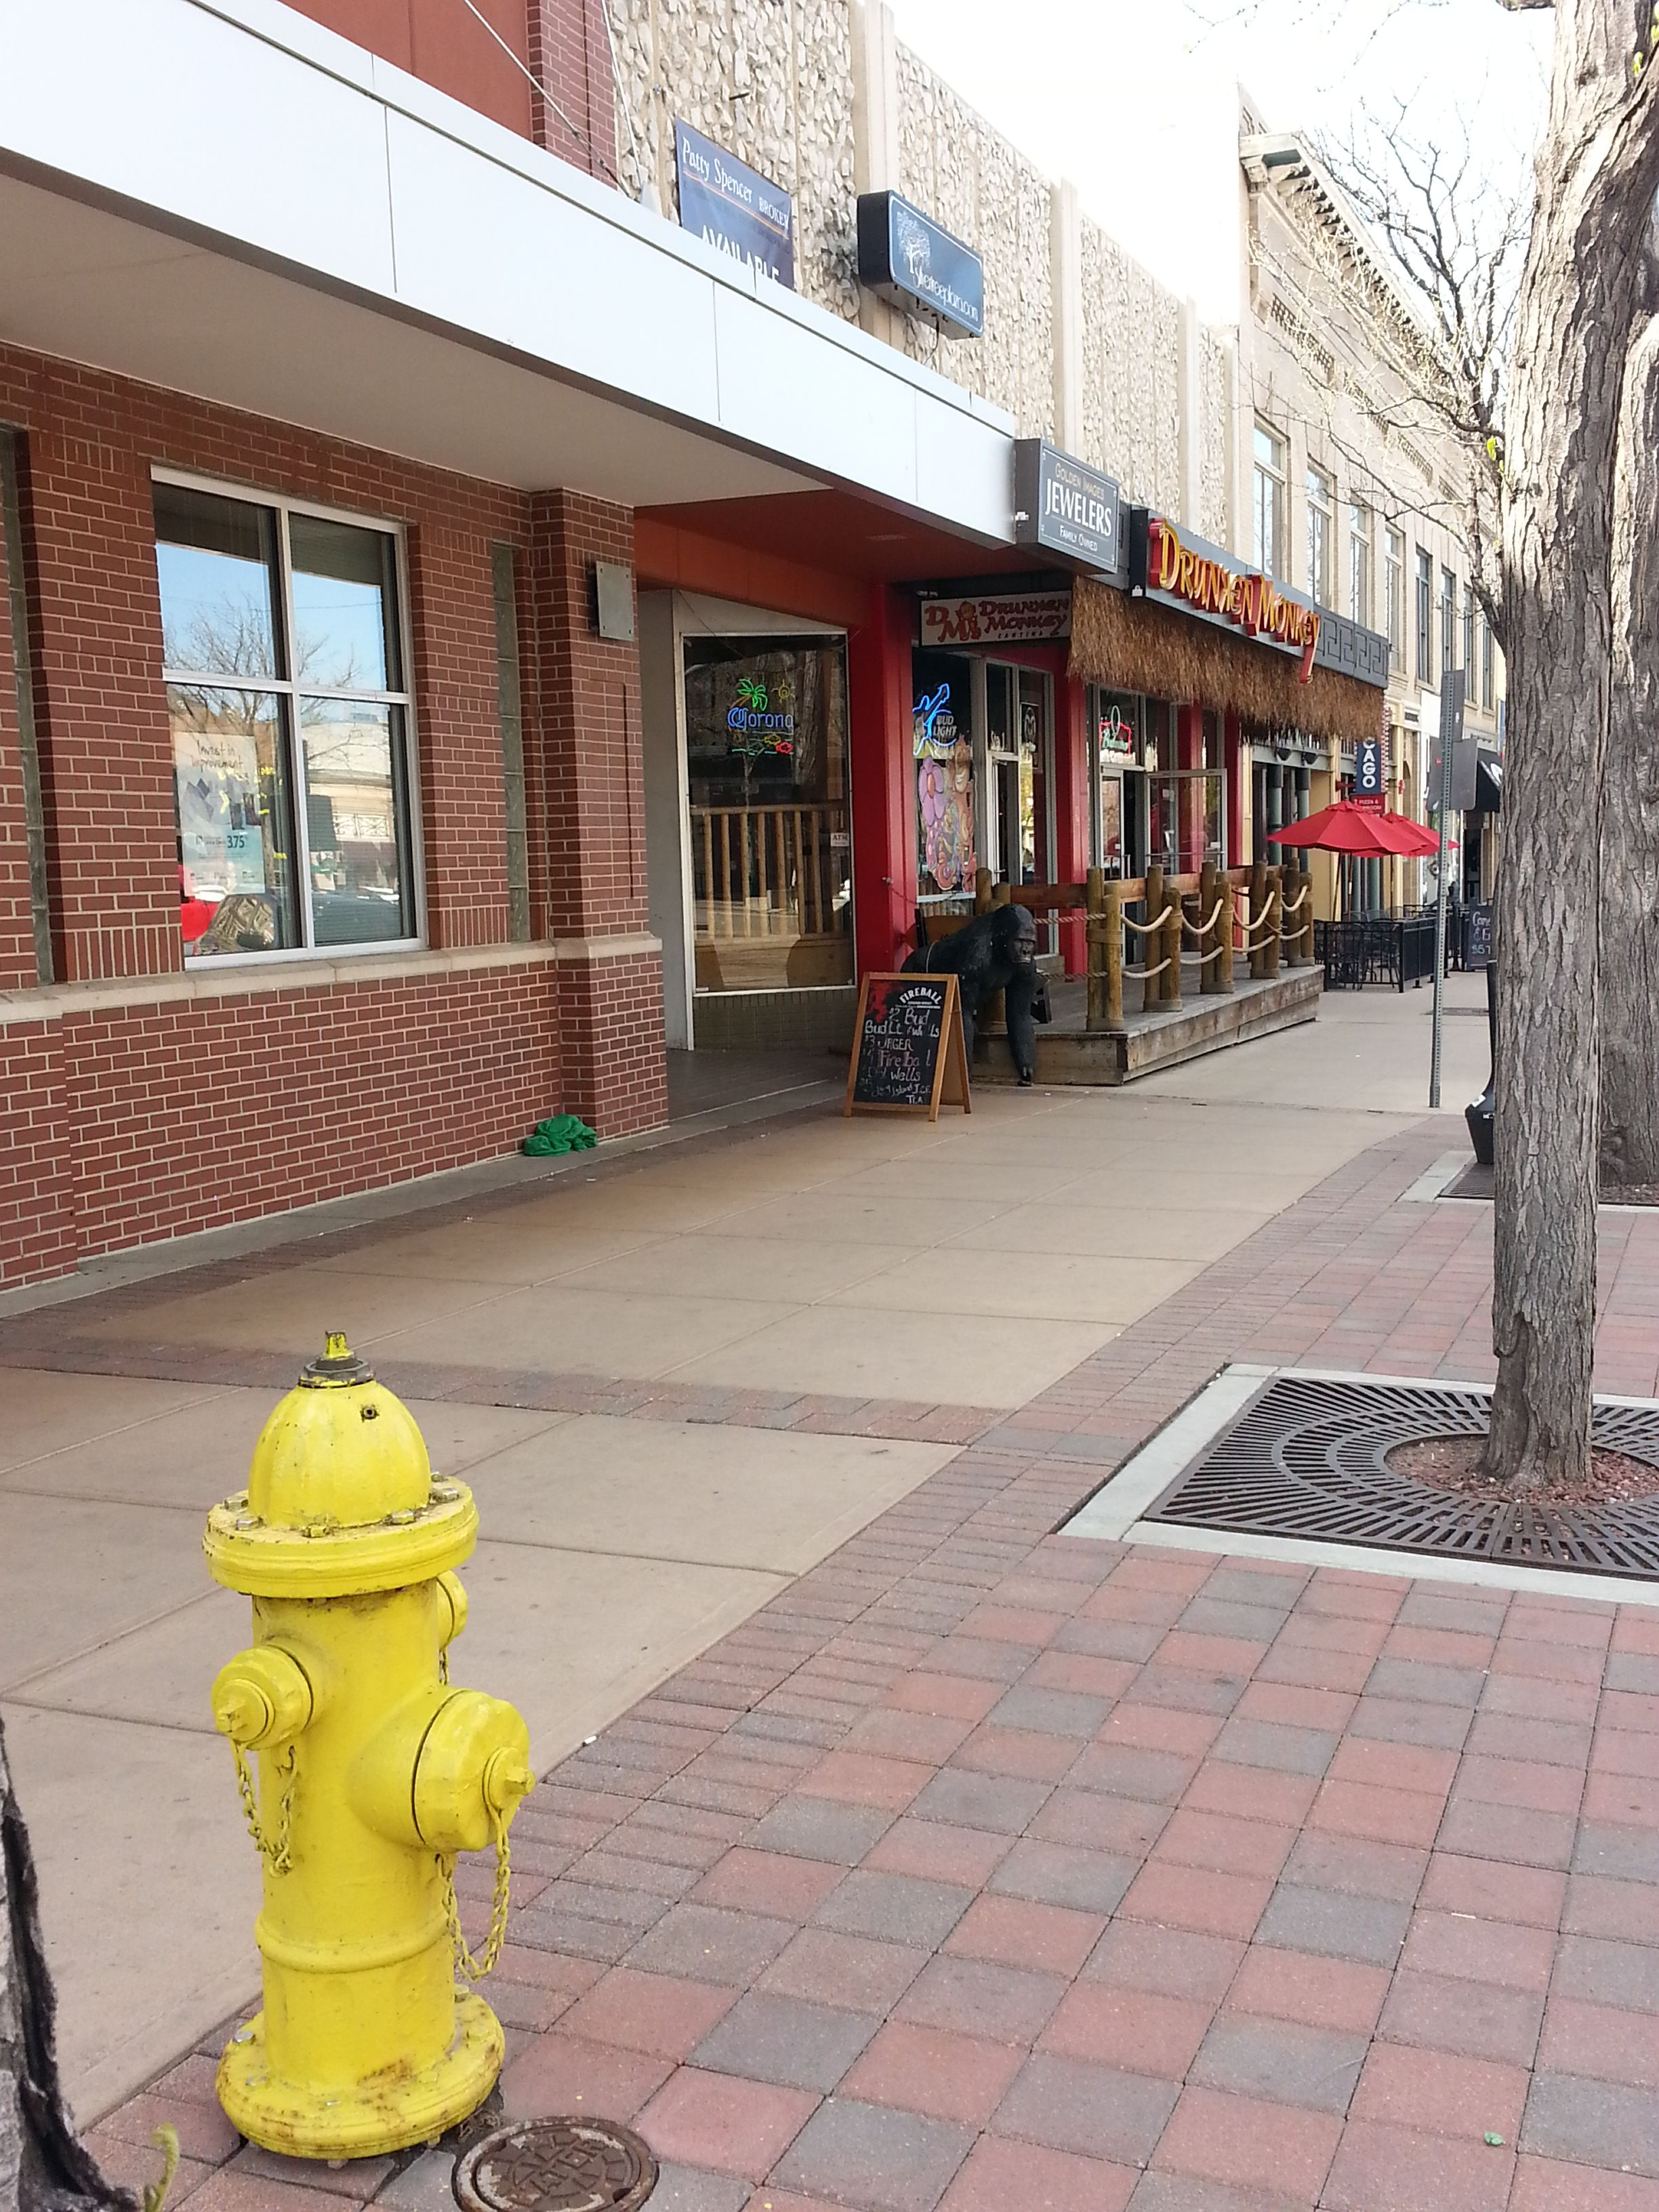 Mueller hydrant just down from the #Drunken Monkey bar in Fort Collins, CO